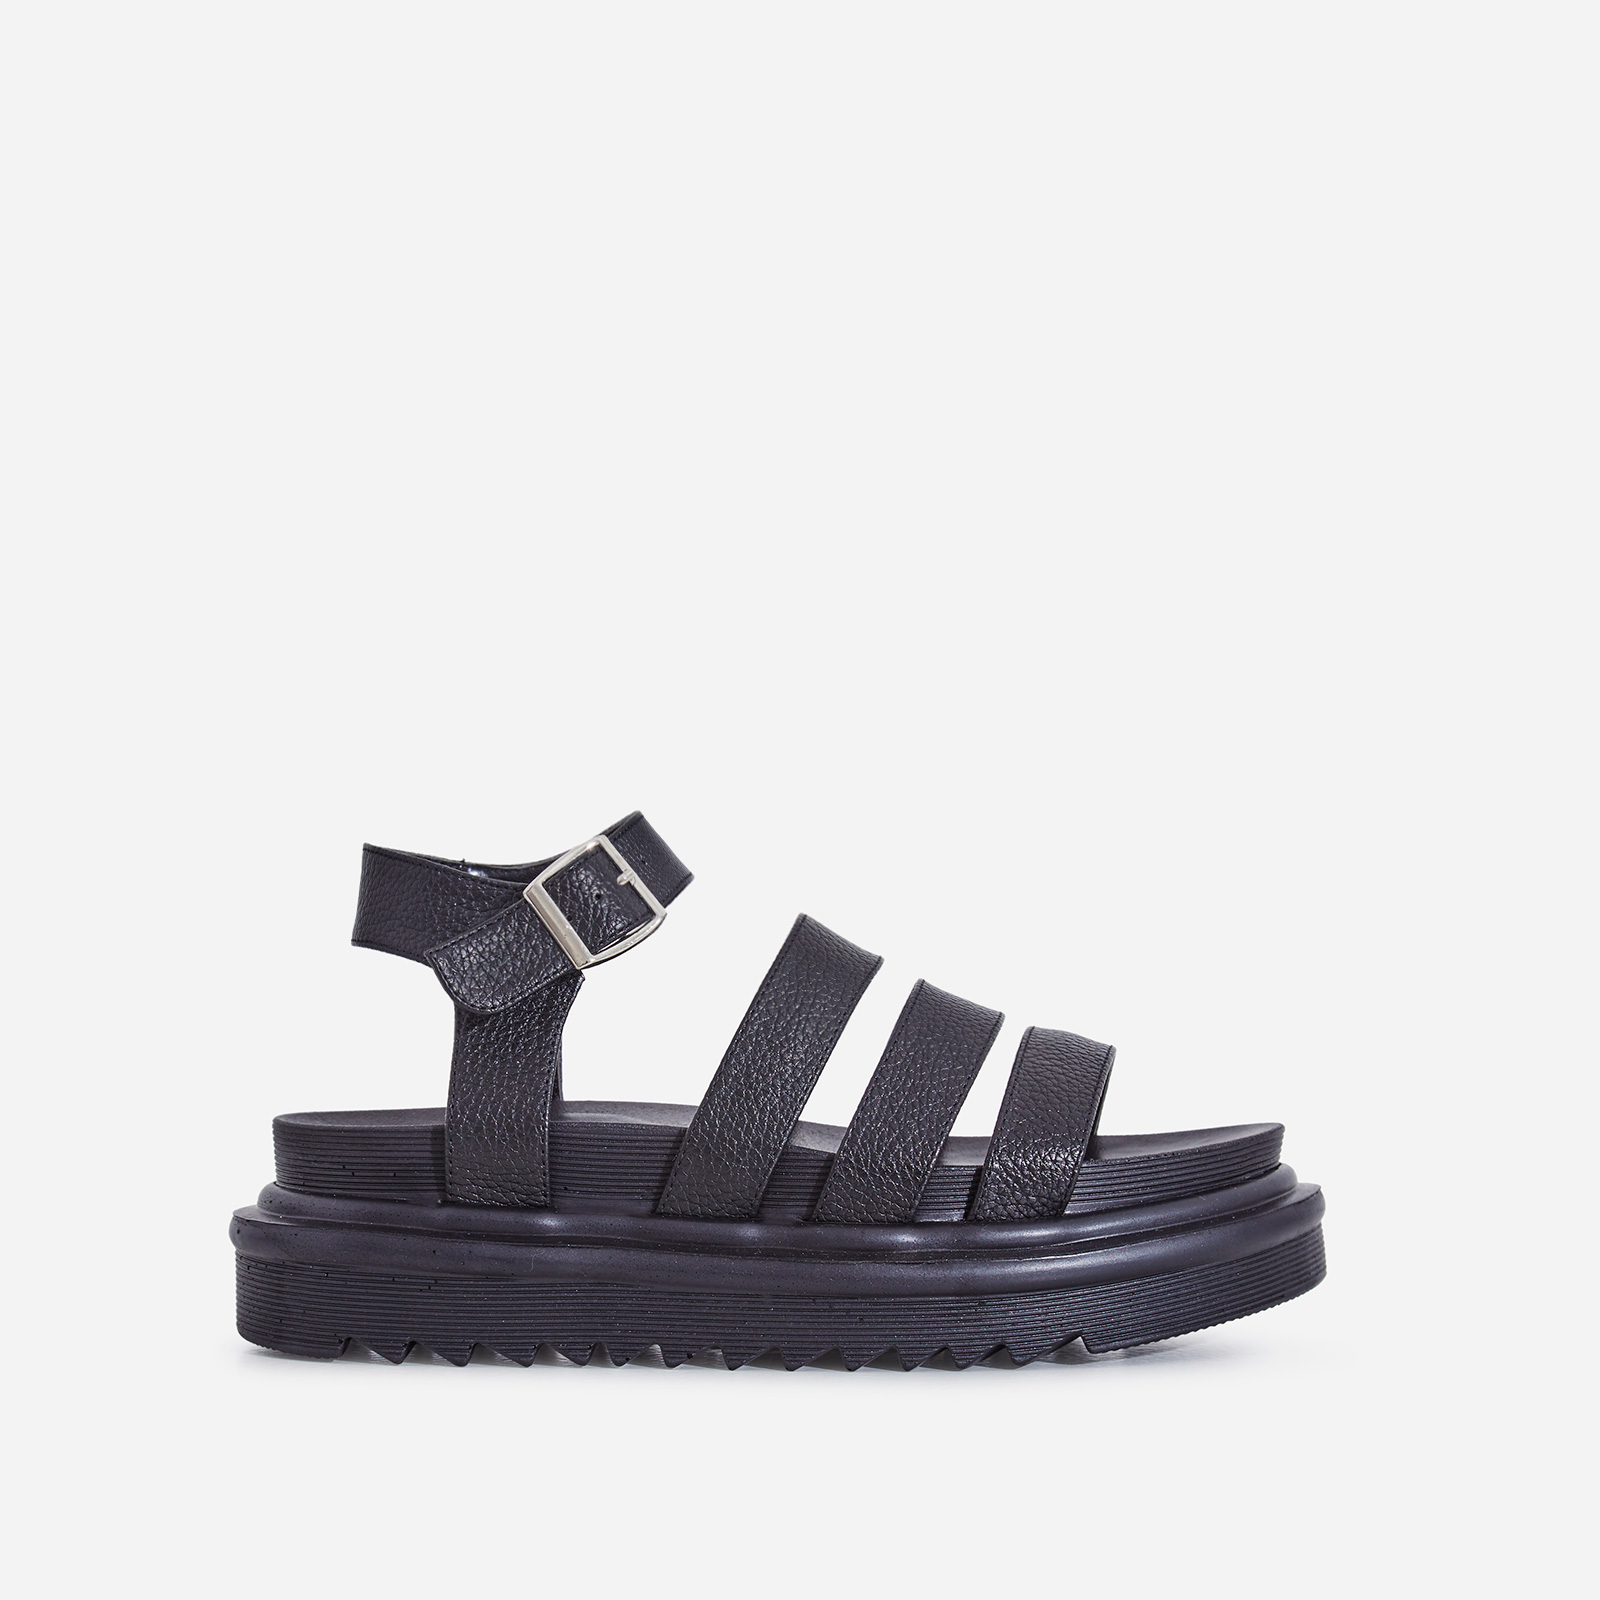 Clueless Chunky Sole Sandal In Black Faux Leather